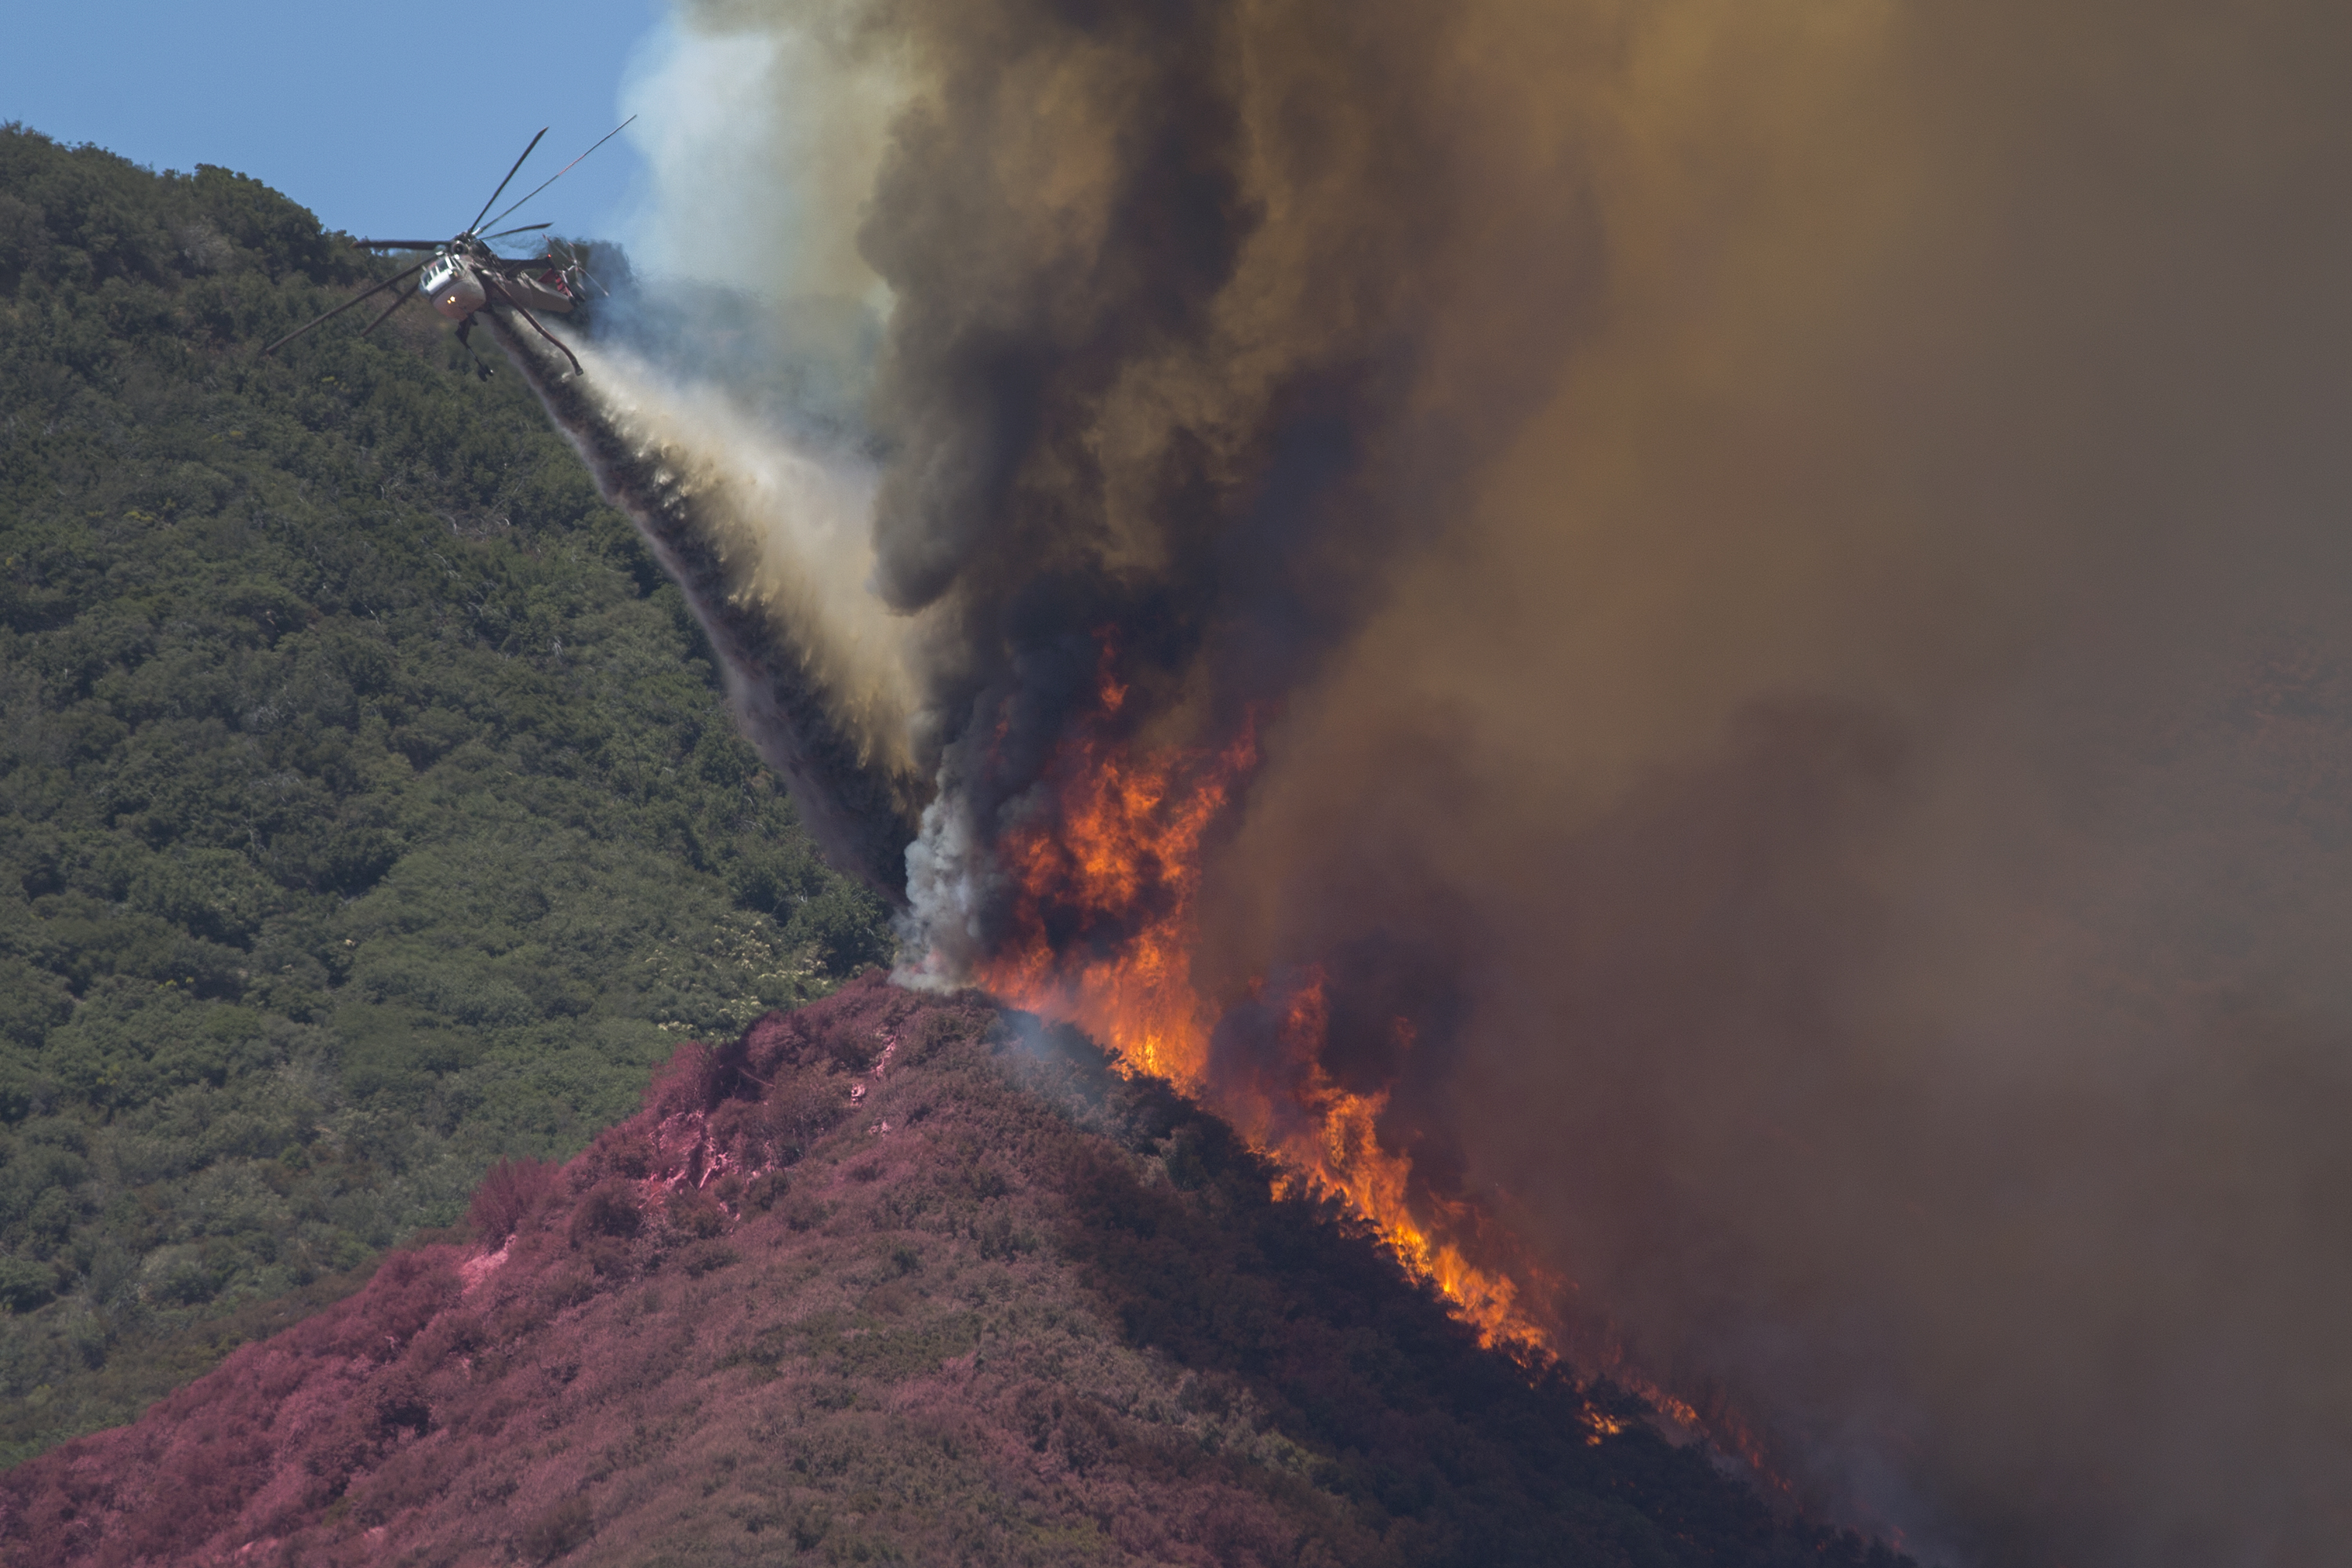 WRIGHTWOOD, CA - AUGUST 18: A firefighting helicopter pilot tries to stop flames close to jumping a ridge, even though the ridge is already painted red with fire retardant, above Cajon Boulevard at the Blue Cut Fire on August 18, 2016 near Wrightwood, California. (Photo by David McNew/Getty Images)